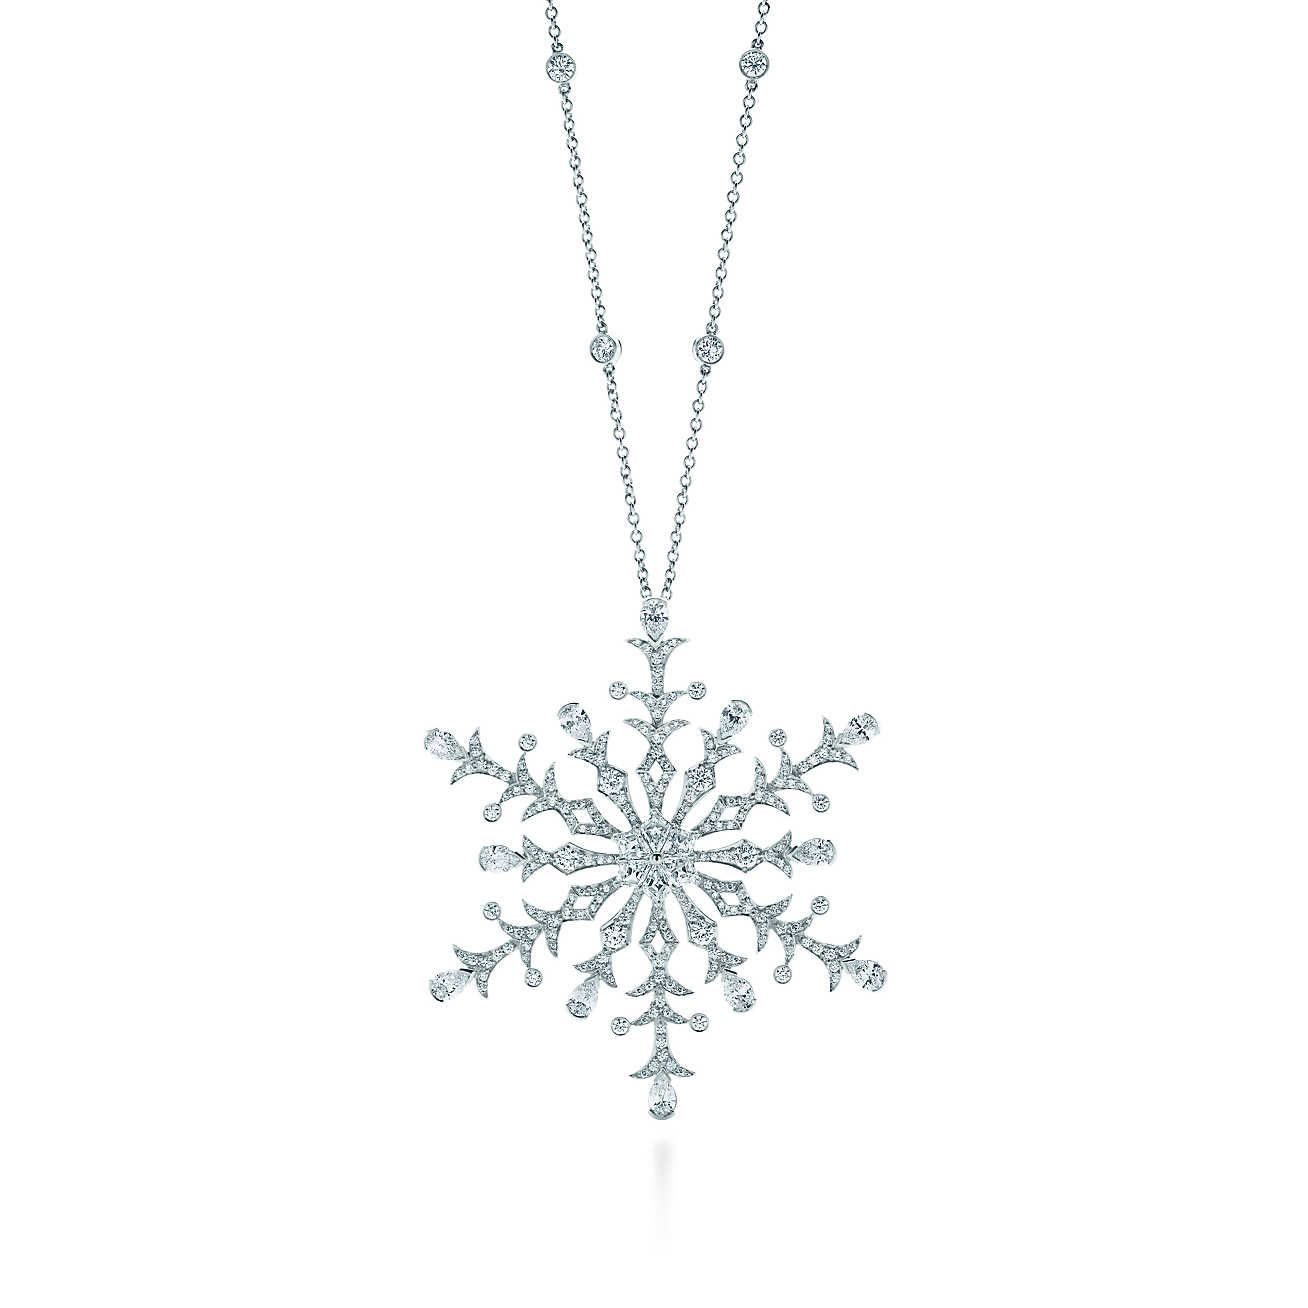 Tiffany snowflake google search snow pinterest tiffany snowflake diamond pendant in platinum mozeypictures Gallery